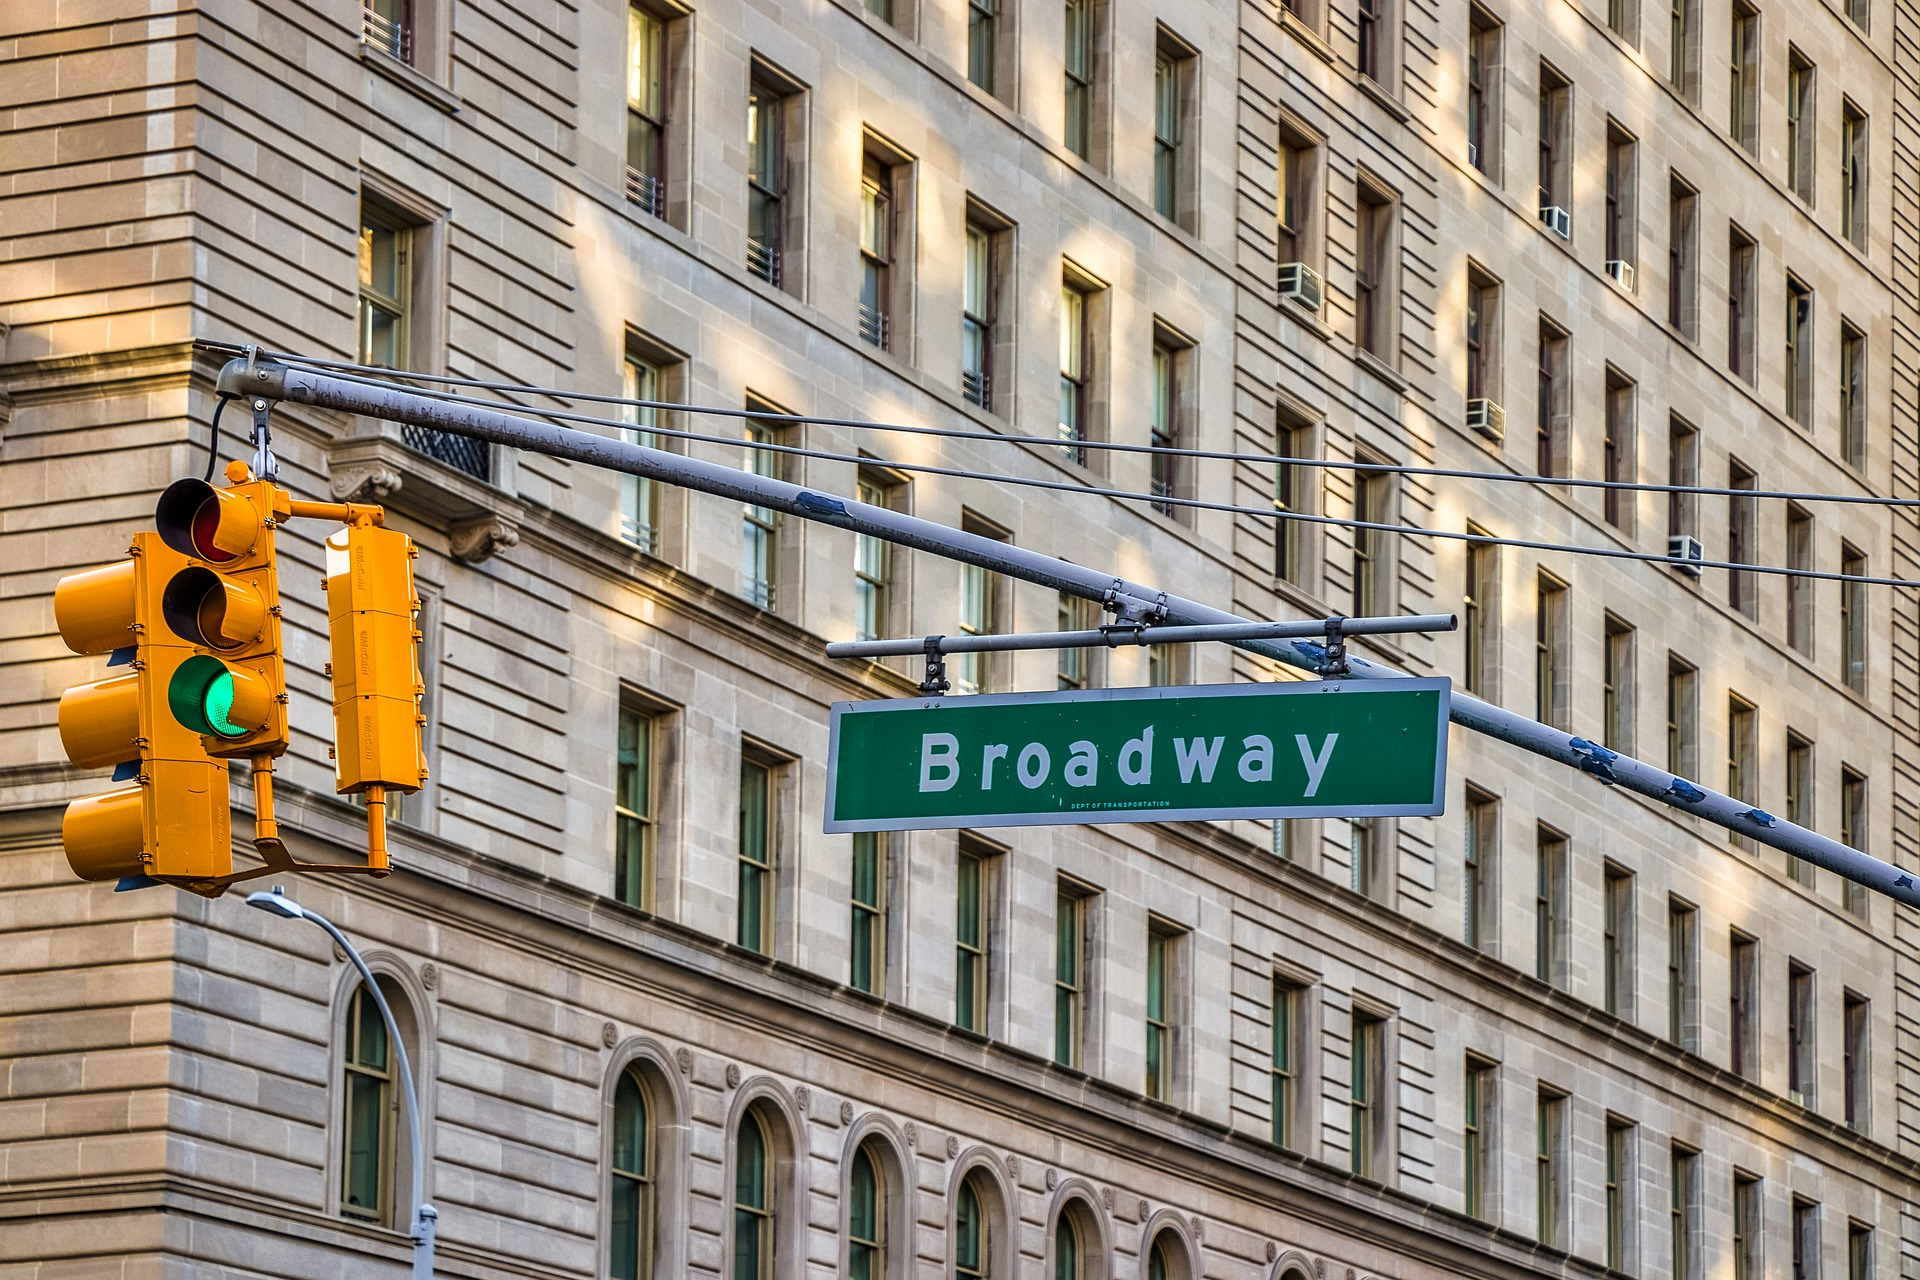 Broadway in Manhattan | Image by nextvoyage from Pixabay